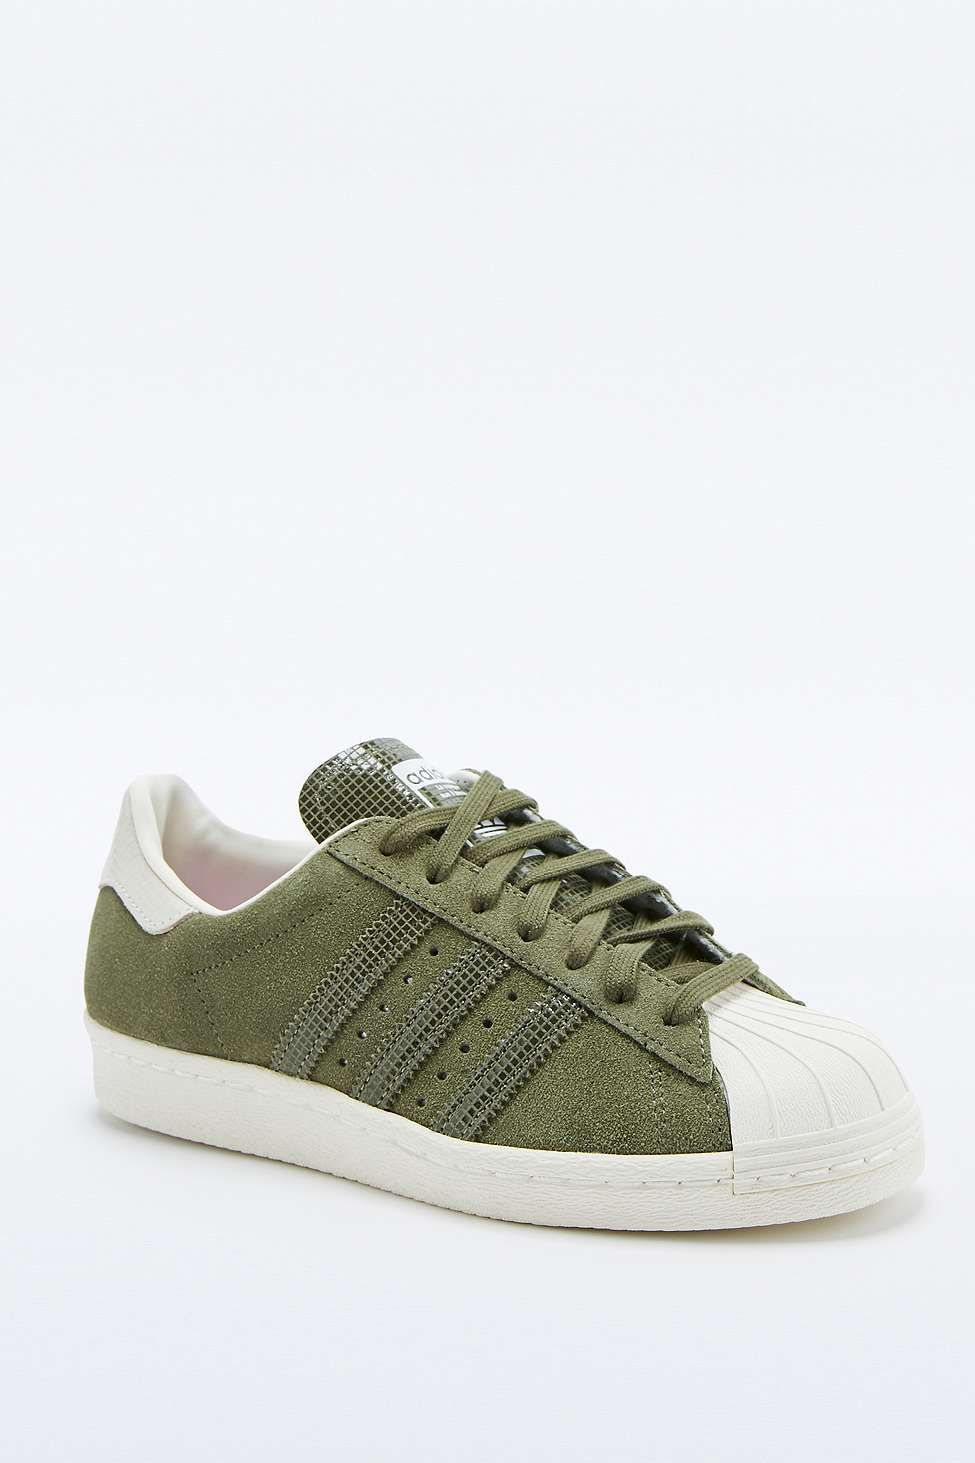 huge selection of fd11b f5db6 adidas Originals Khaki Suede Superstar Trainers